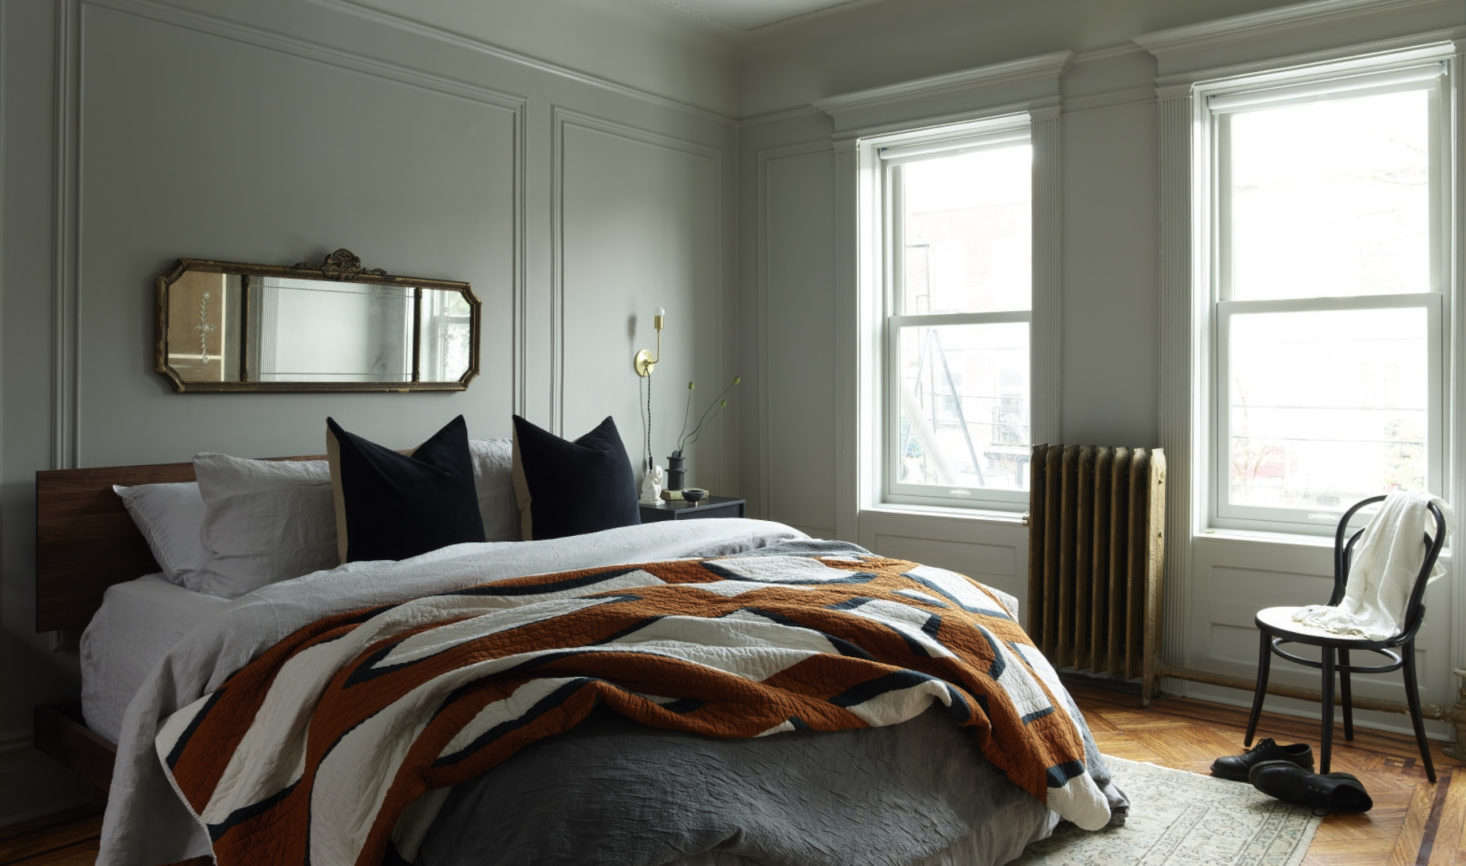 The second floor houses a master suite, Kocher's solution to make the previously awkward, chopped-up space feel more cohesive.